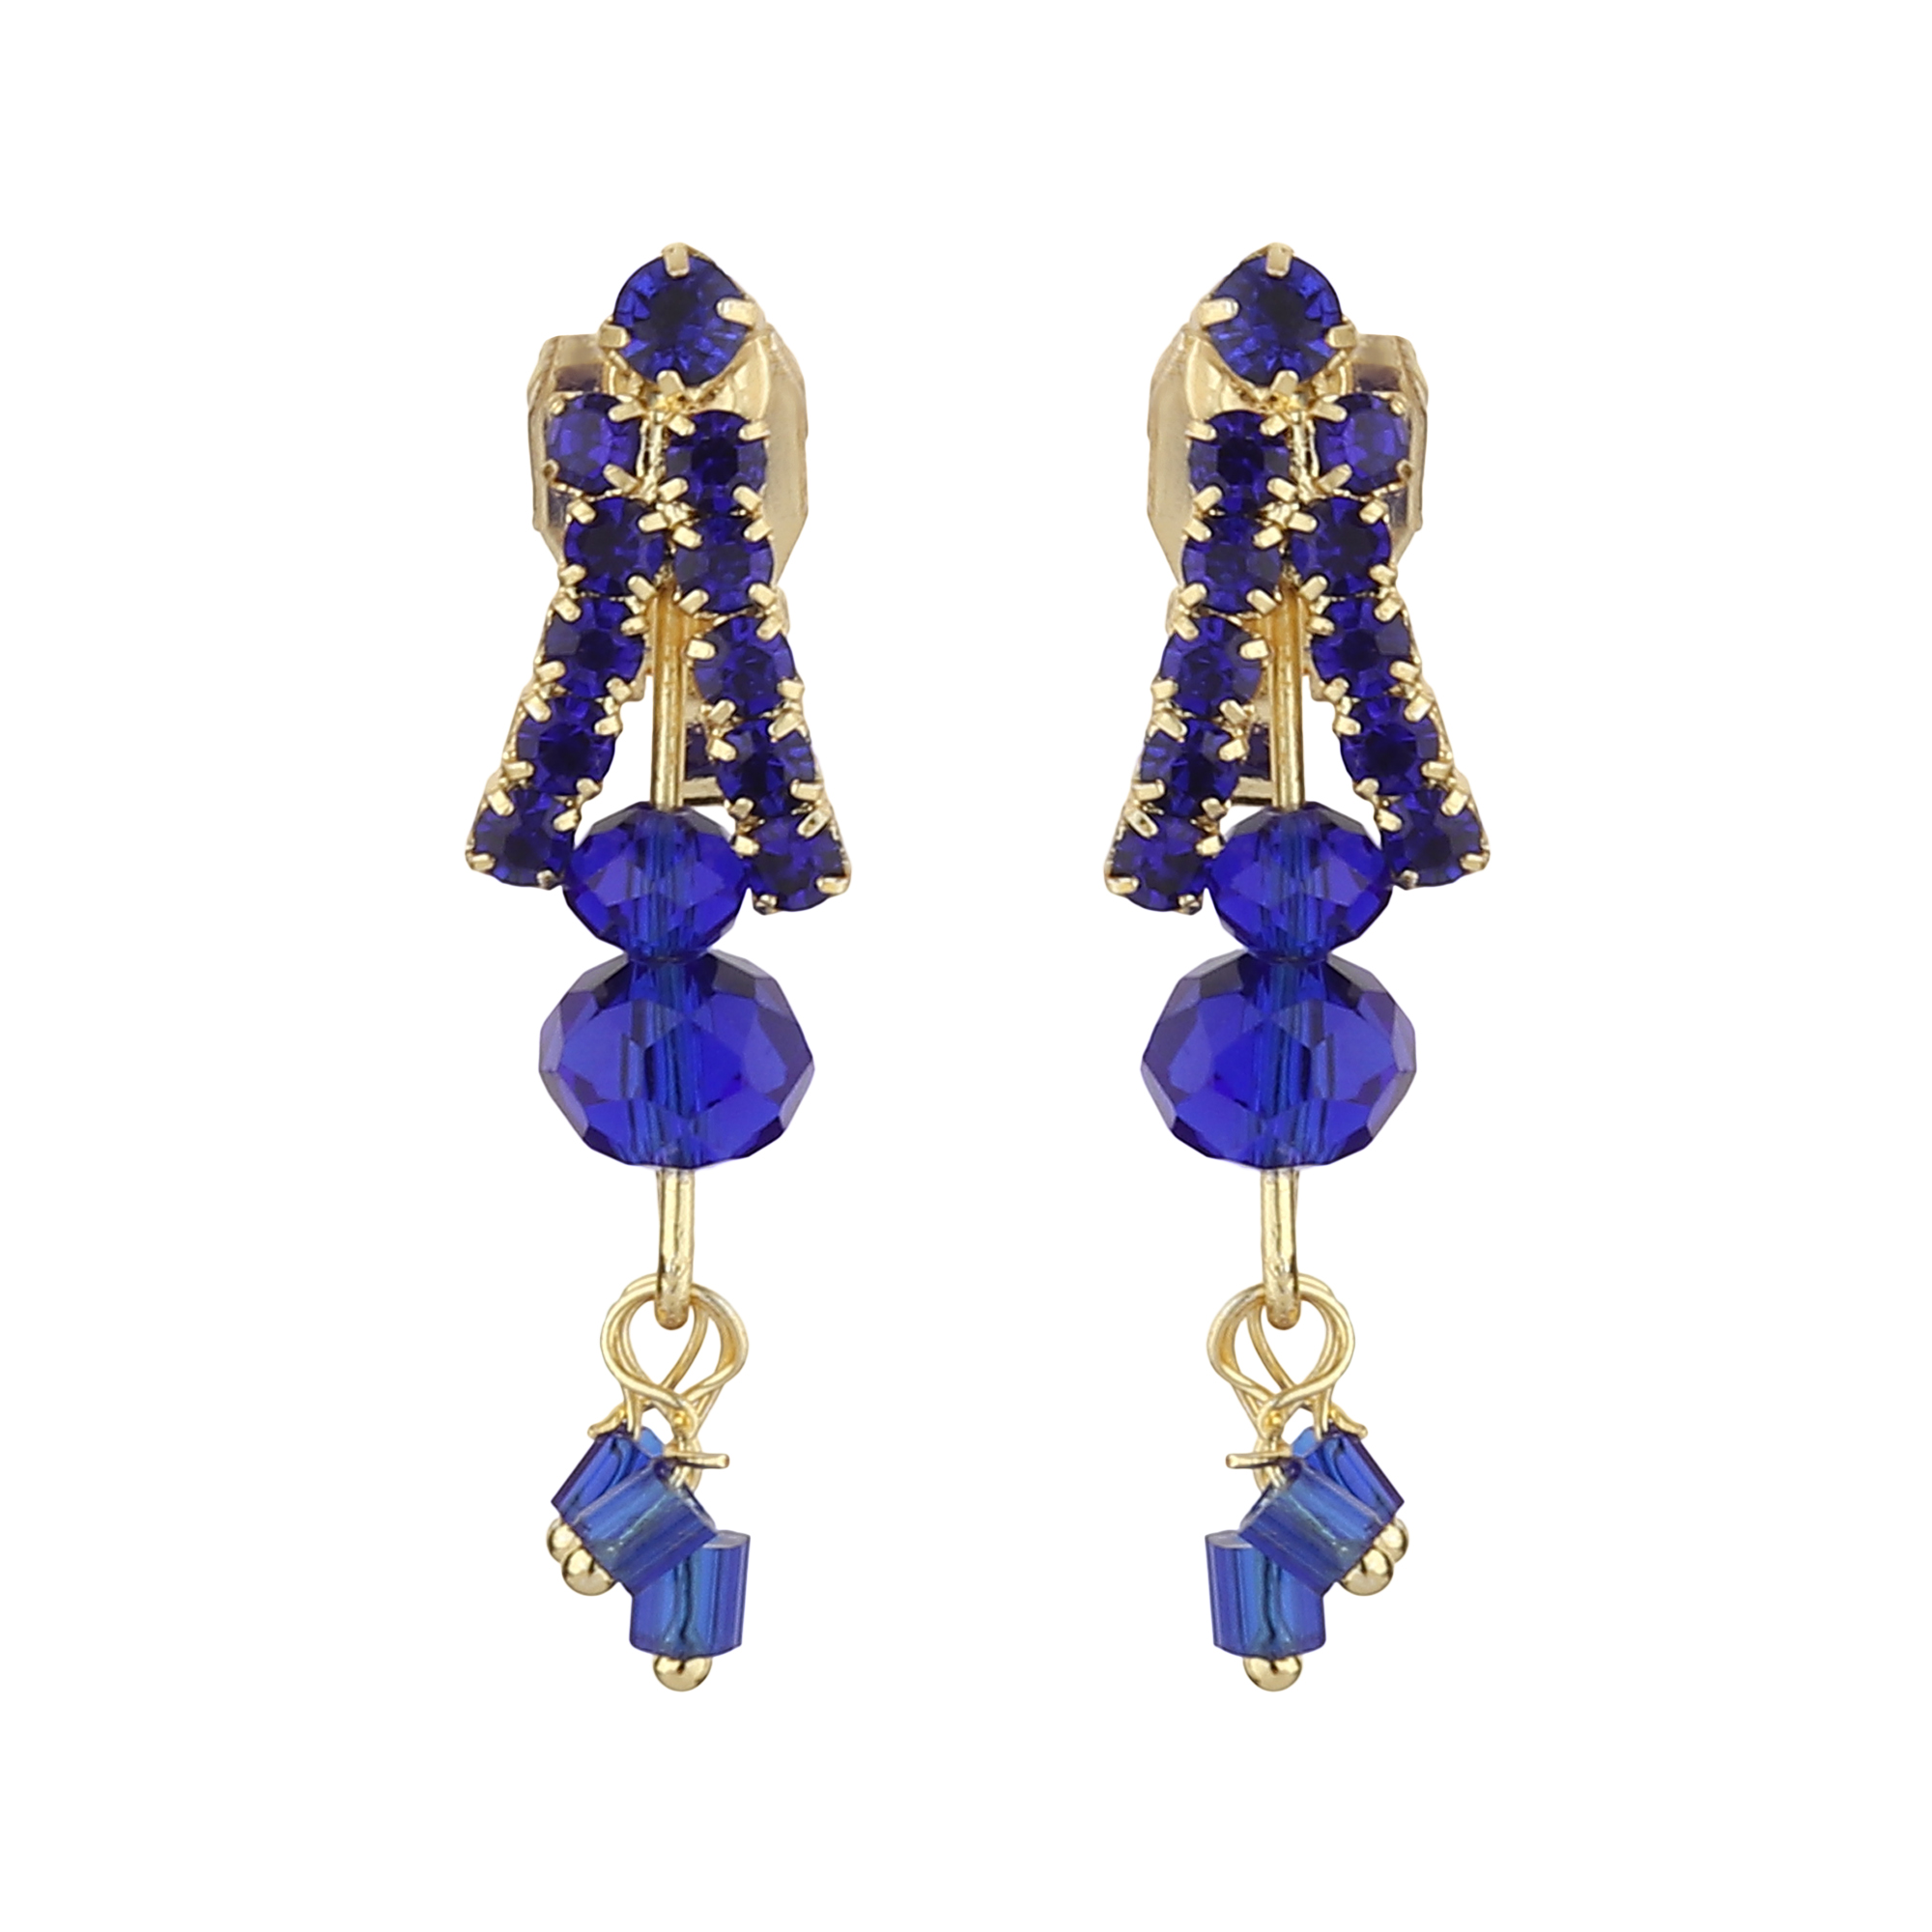 FirstBlush | FirstBlush Clip On Earrings for Non Piearced Ears for Women & Girls; Plating: Gold; Color: Navy (Blue); Size: 30 X 10mm; Wt.: 3gm. (MIEC104M143)